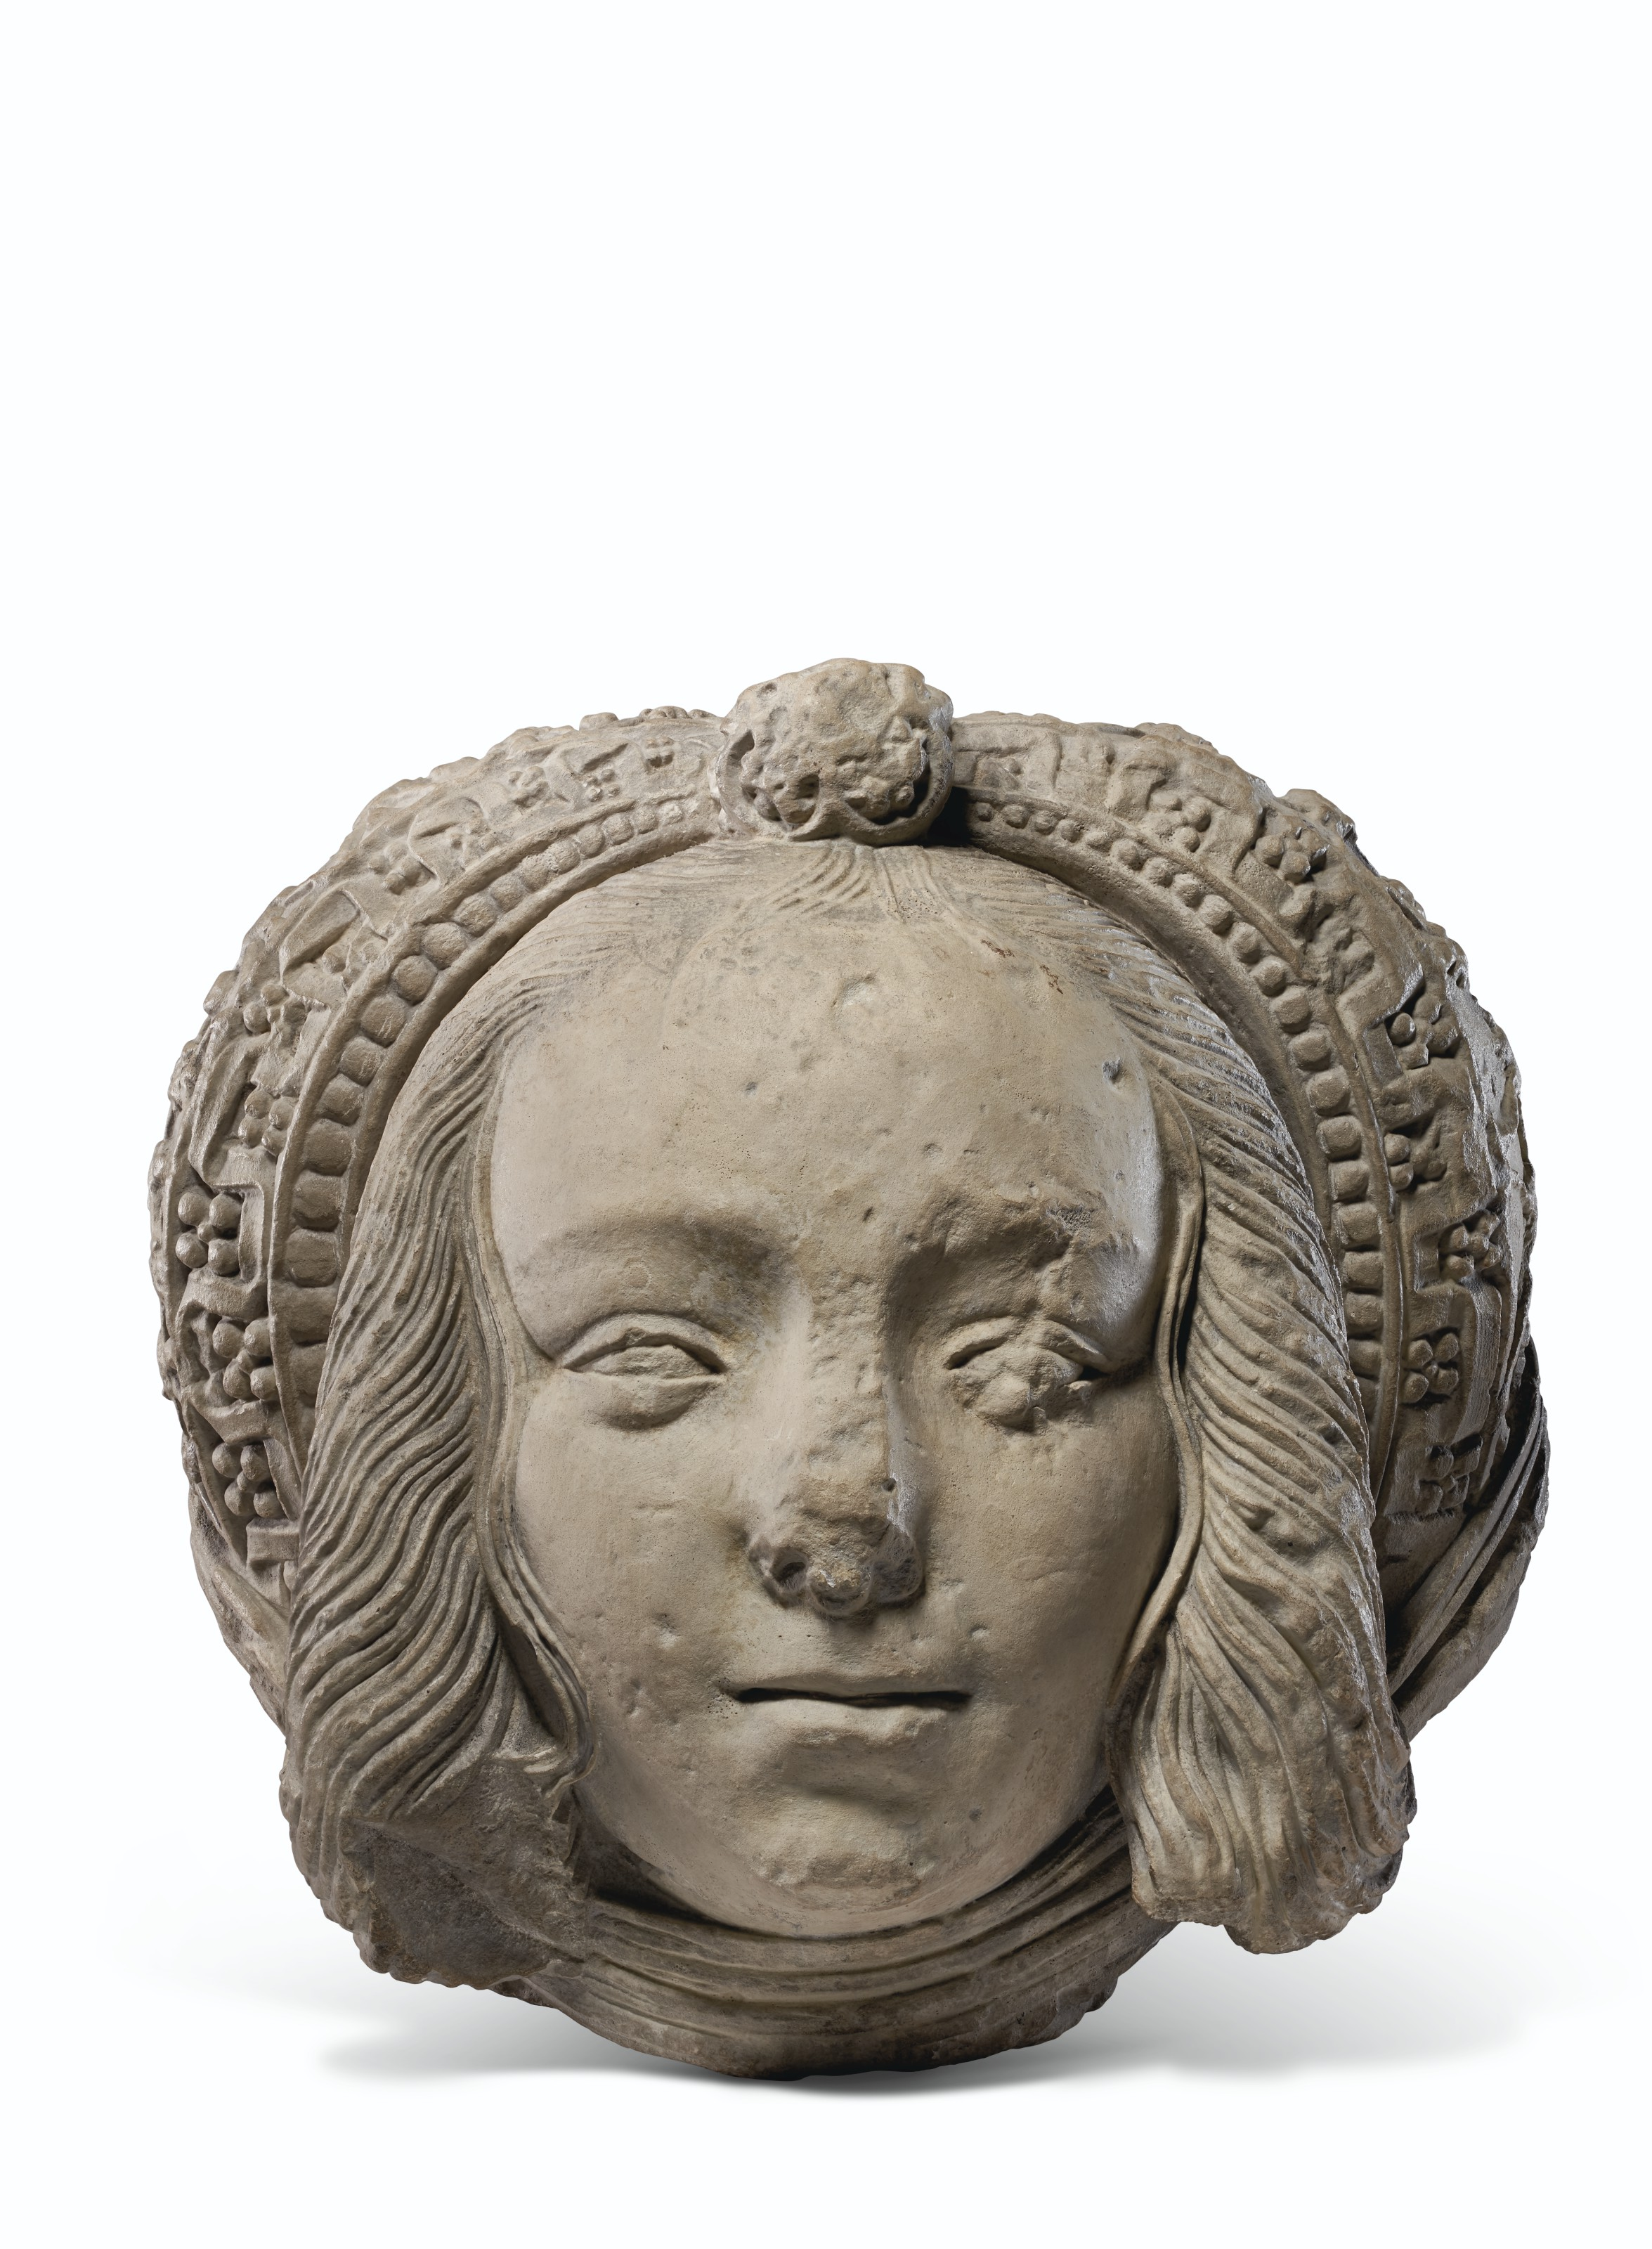 FRENCH, FIRST QUARTER 16TH CENTURY